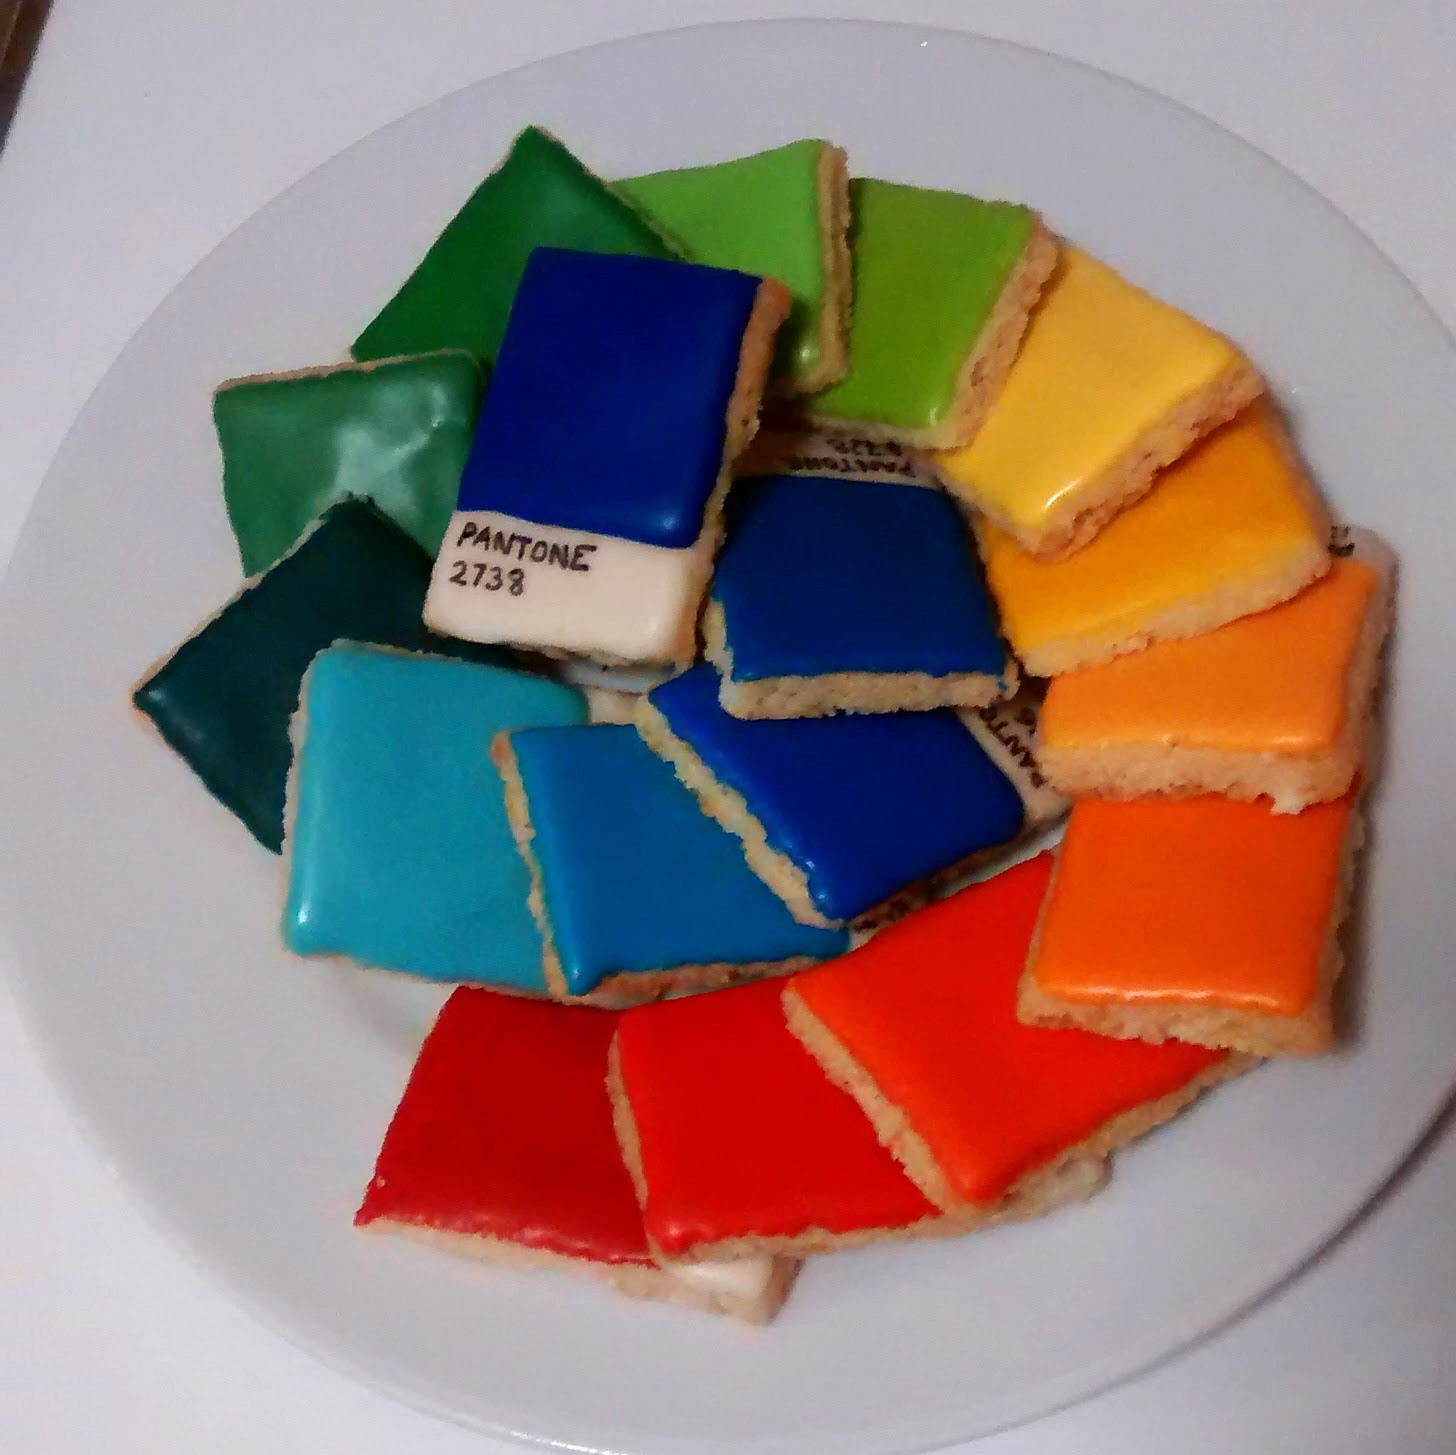 Pantone shortbread swatches